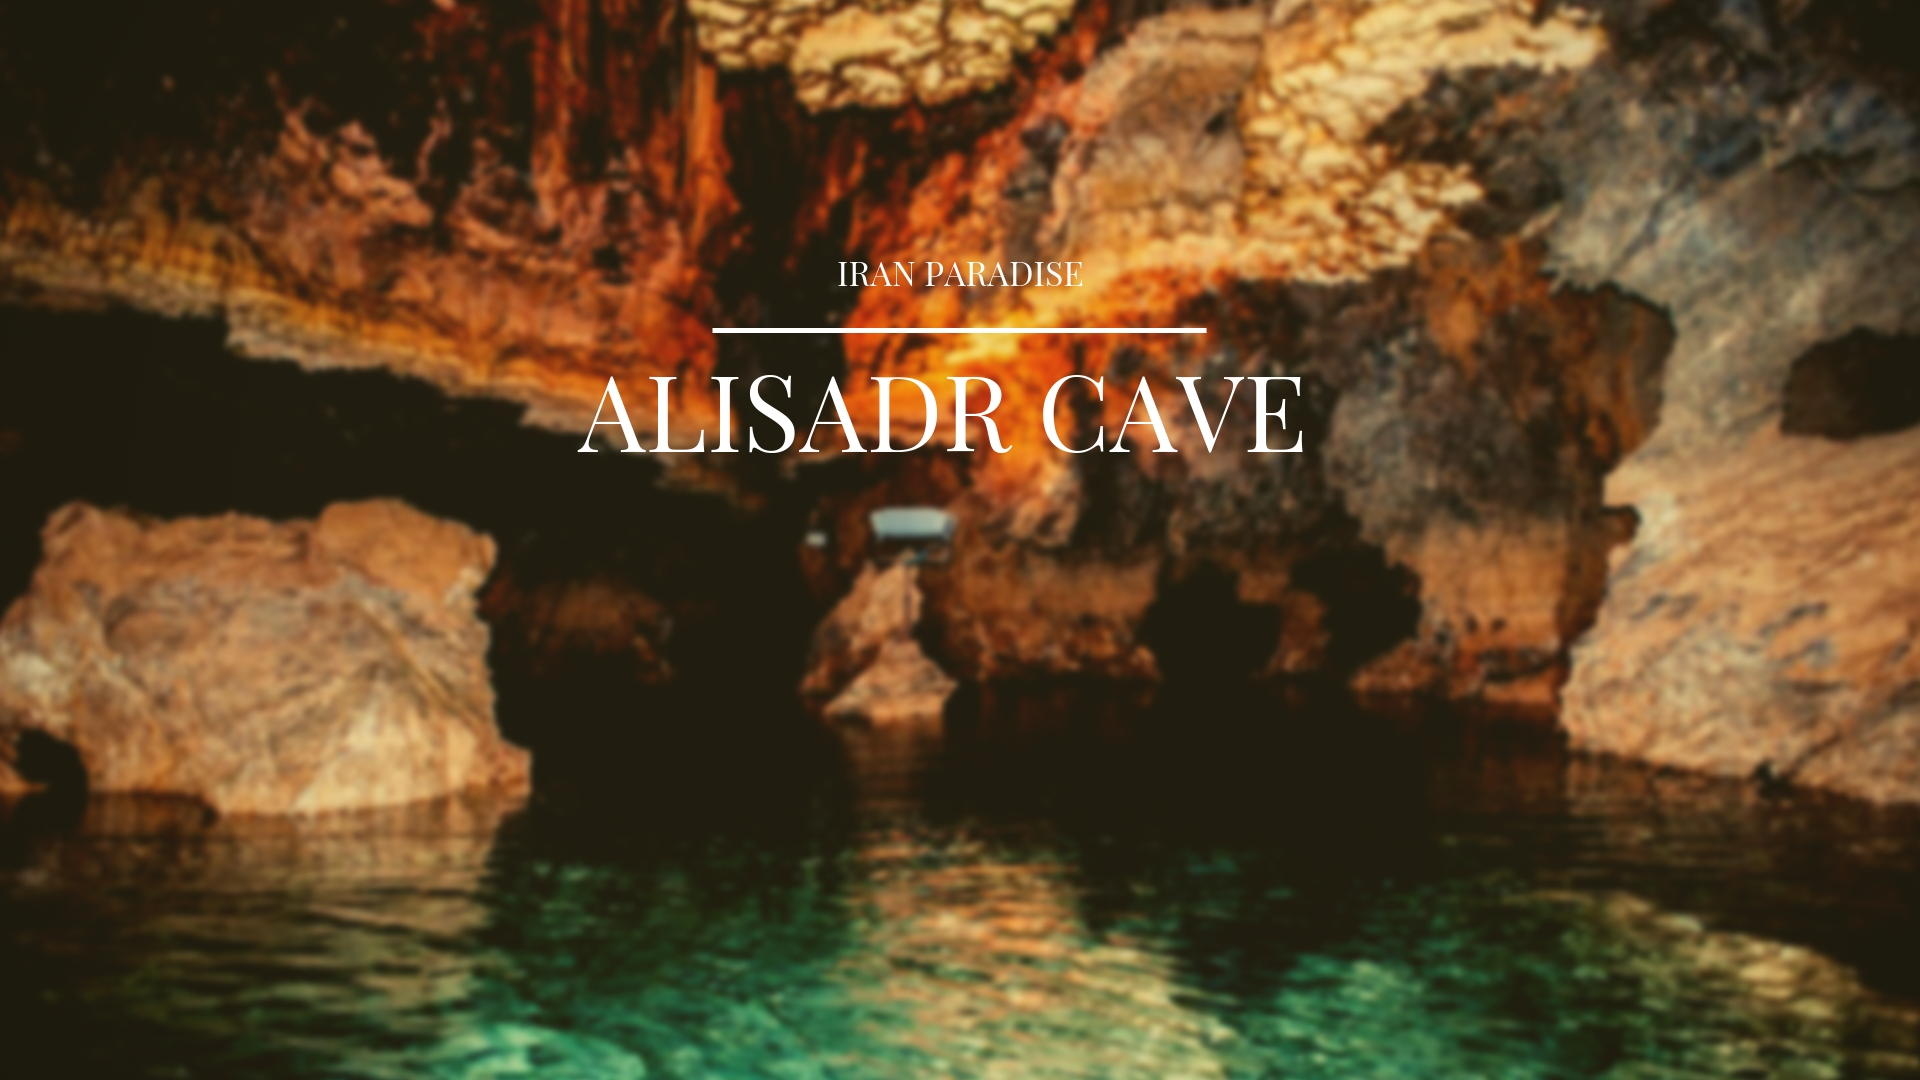 Alisadr Cave